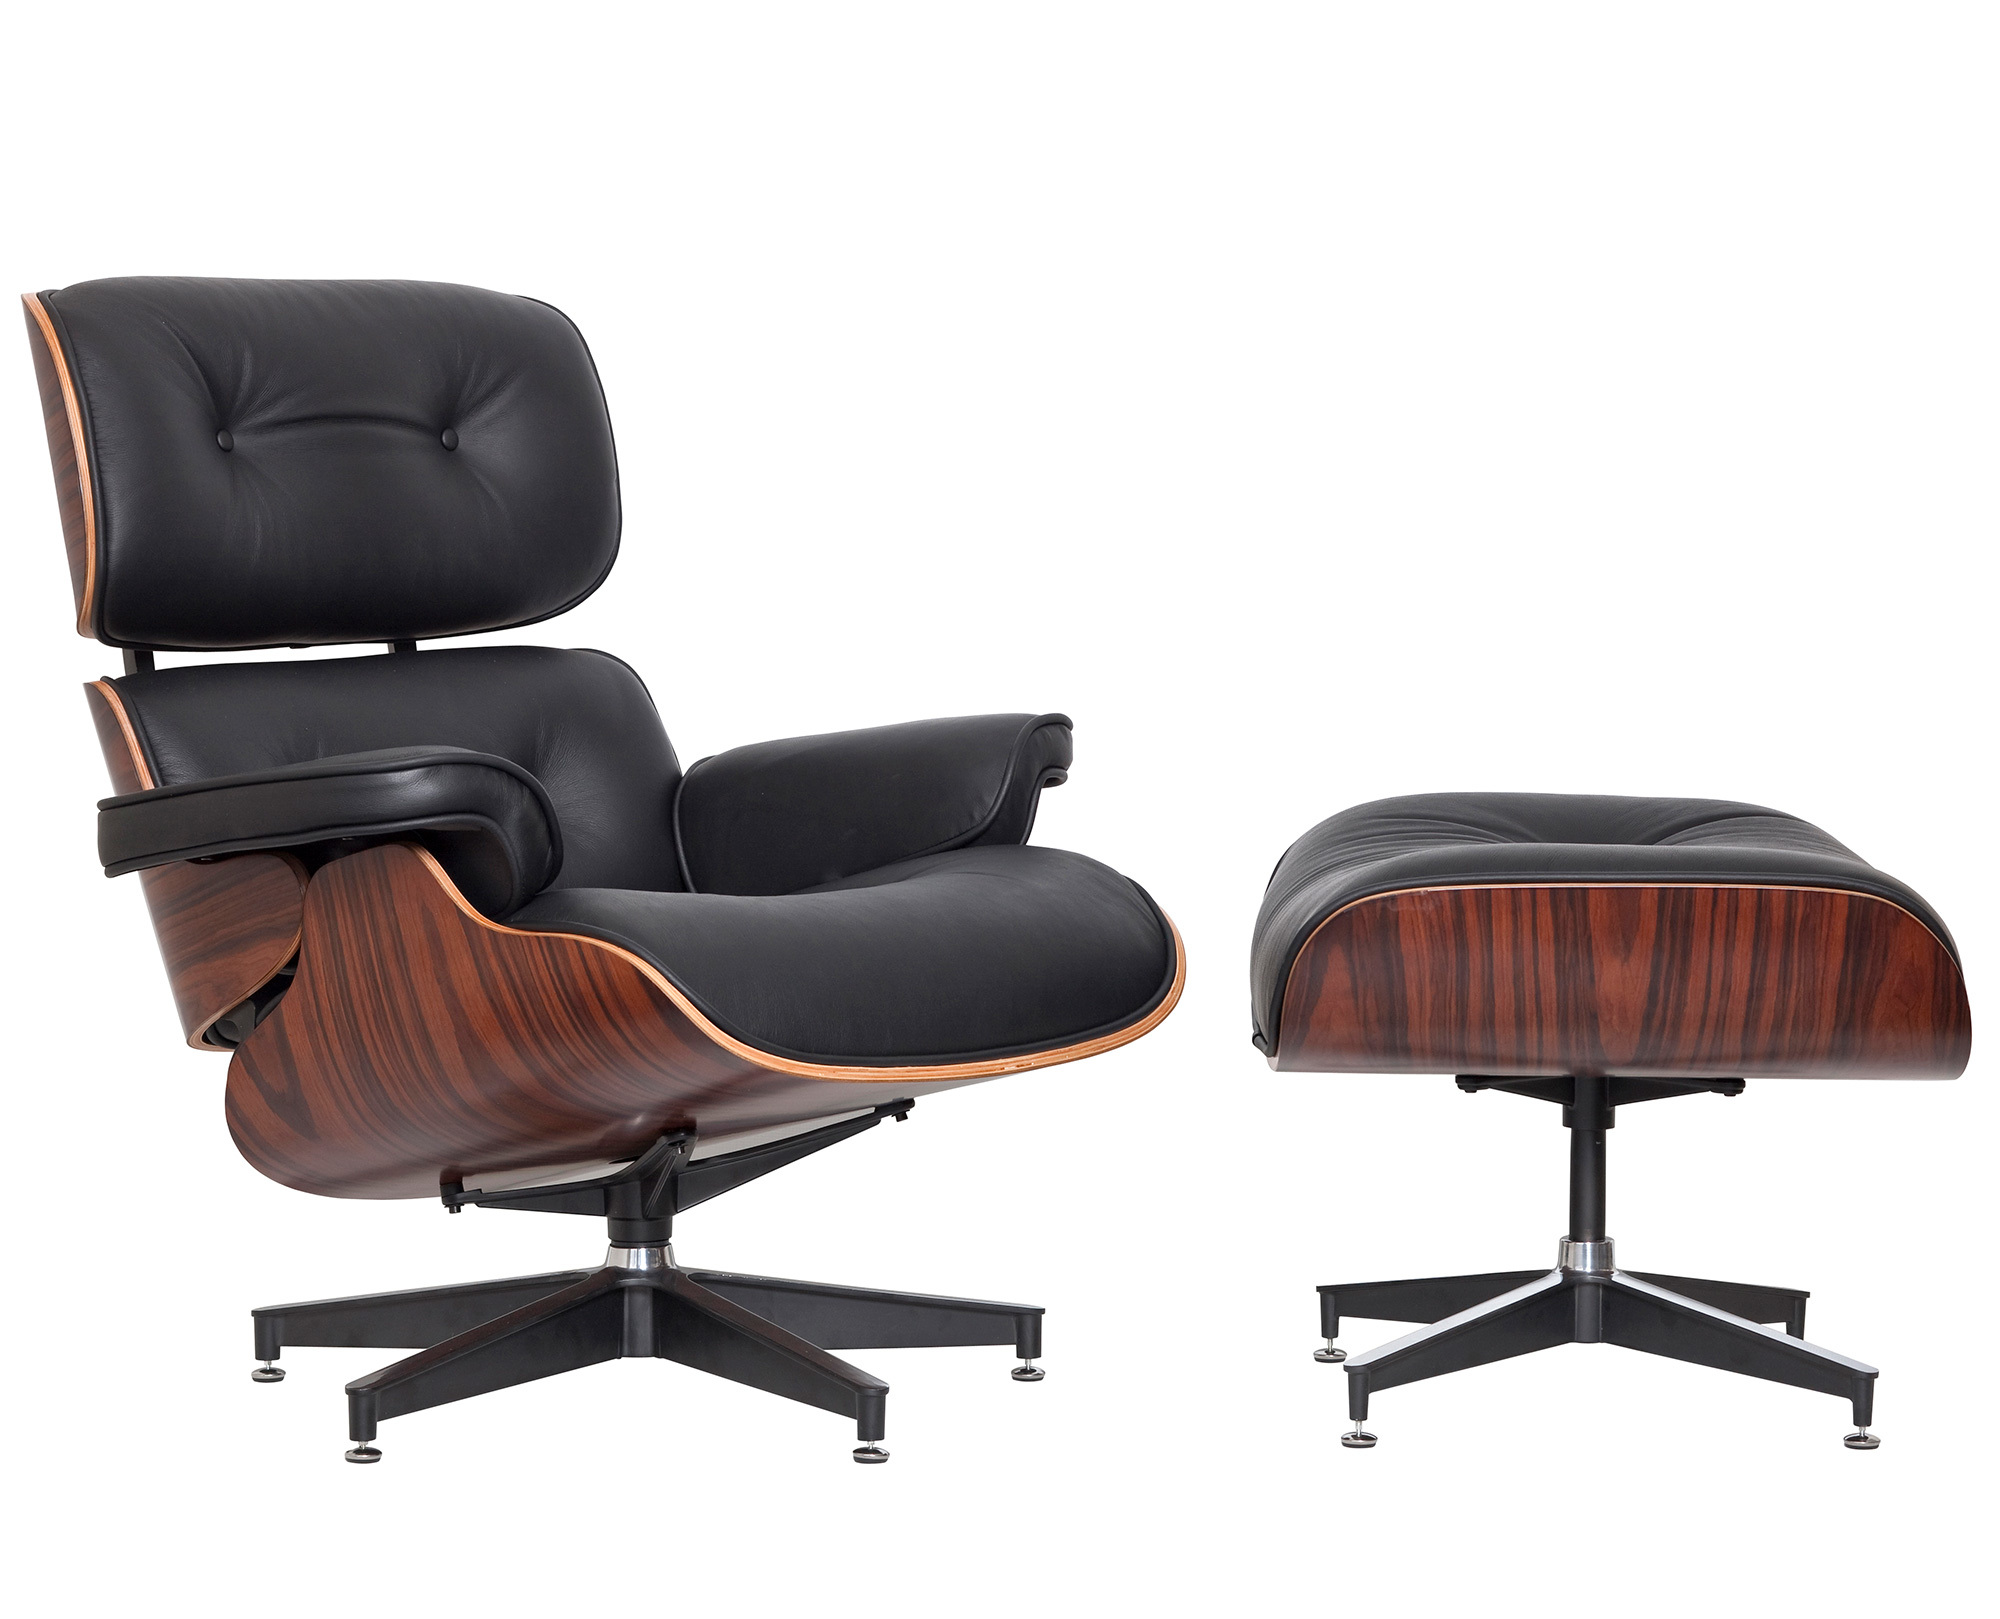 Eames Lounge Office Chair New Milan Direct Eames Classic Replica Lounge Chair